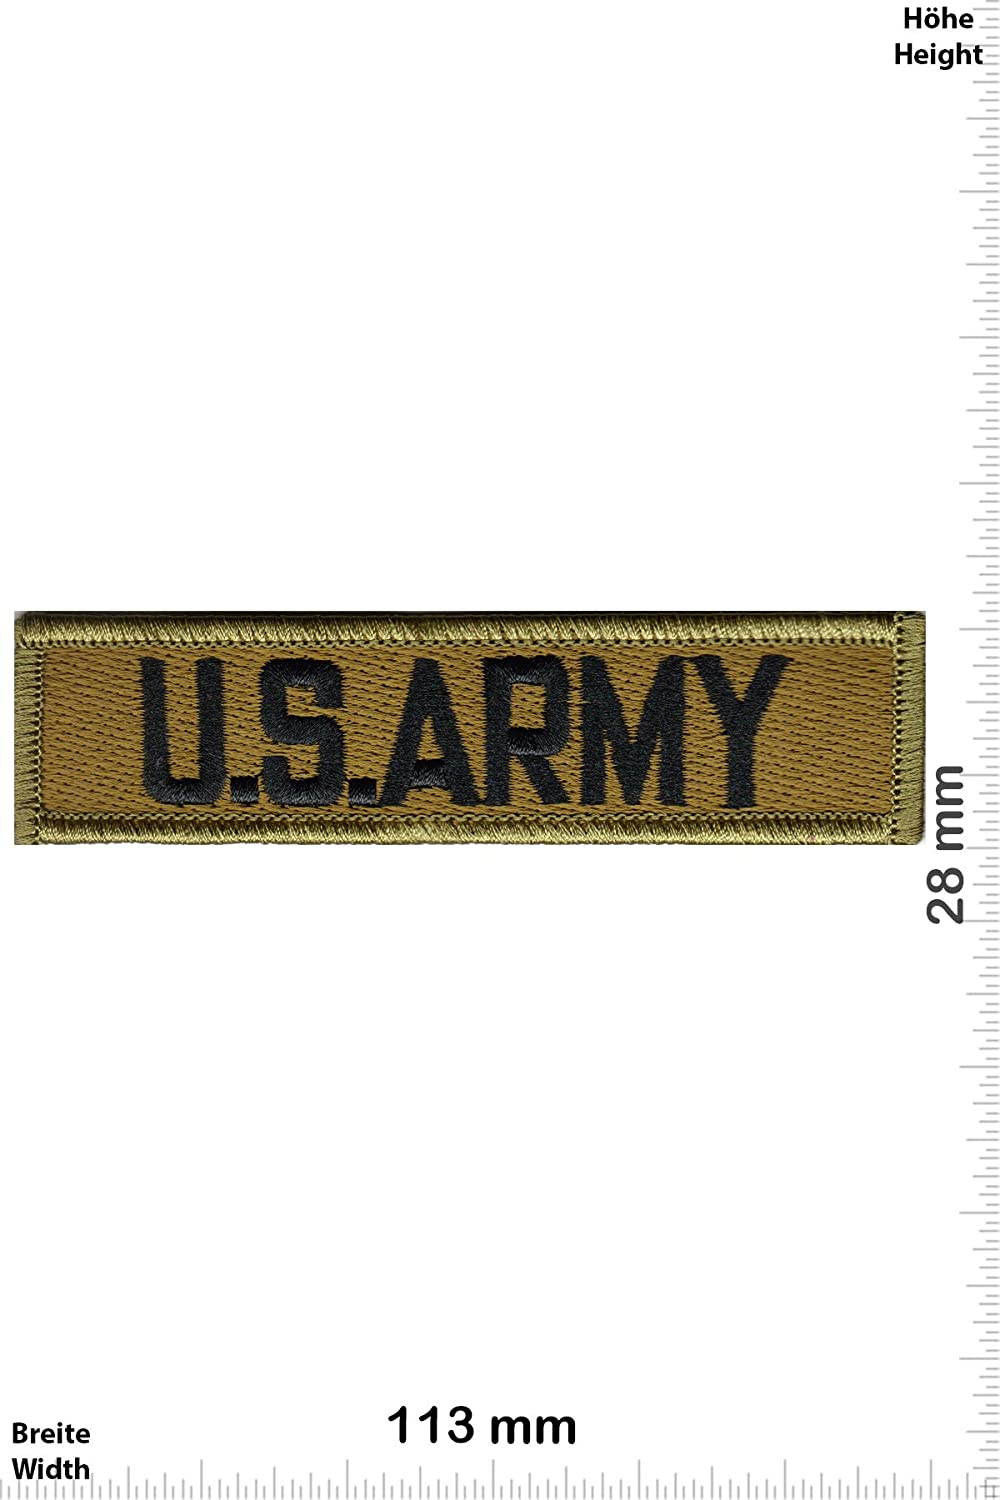 Patch-Iron-U.S. Army - HQ - - Military - U.S. Army - Iron On Patches - Aufnäher Embleme Bügelbild Aufbügler